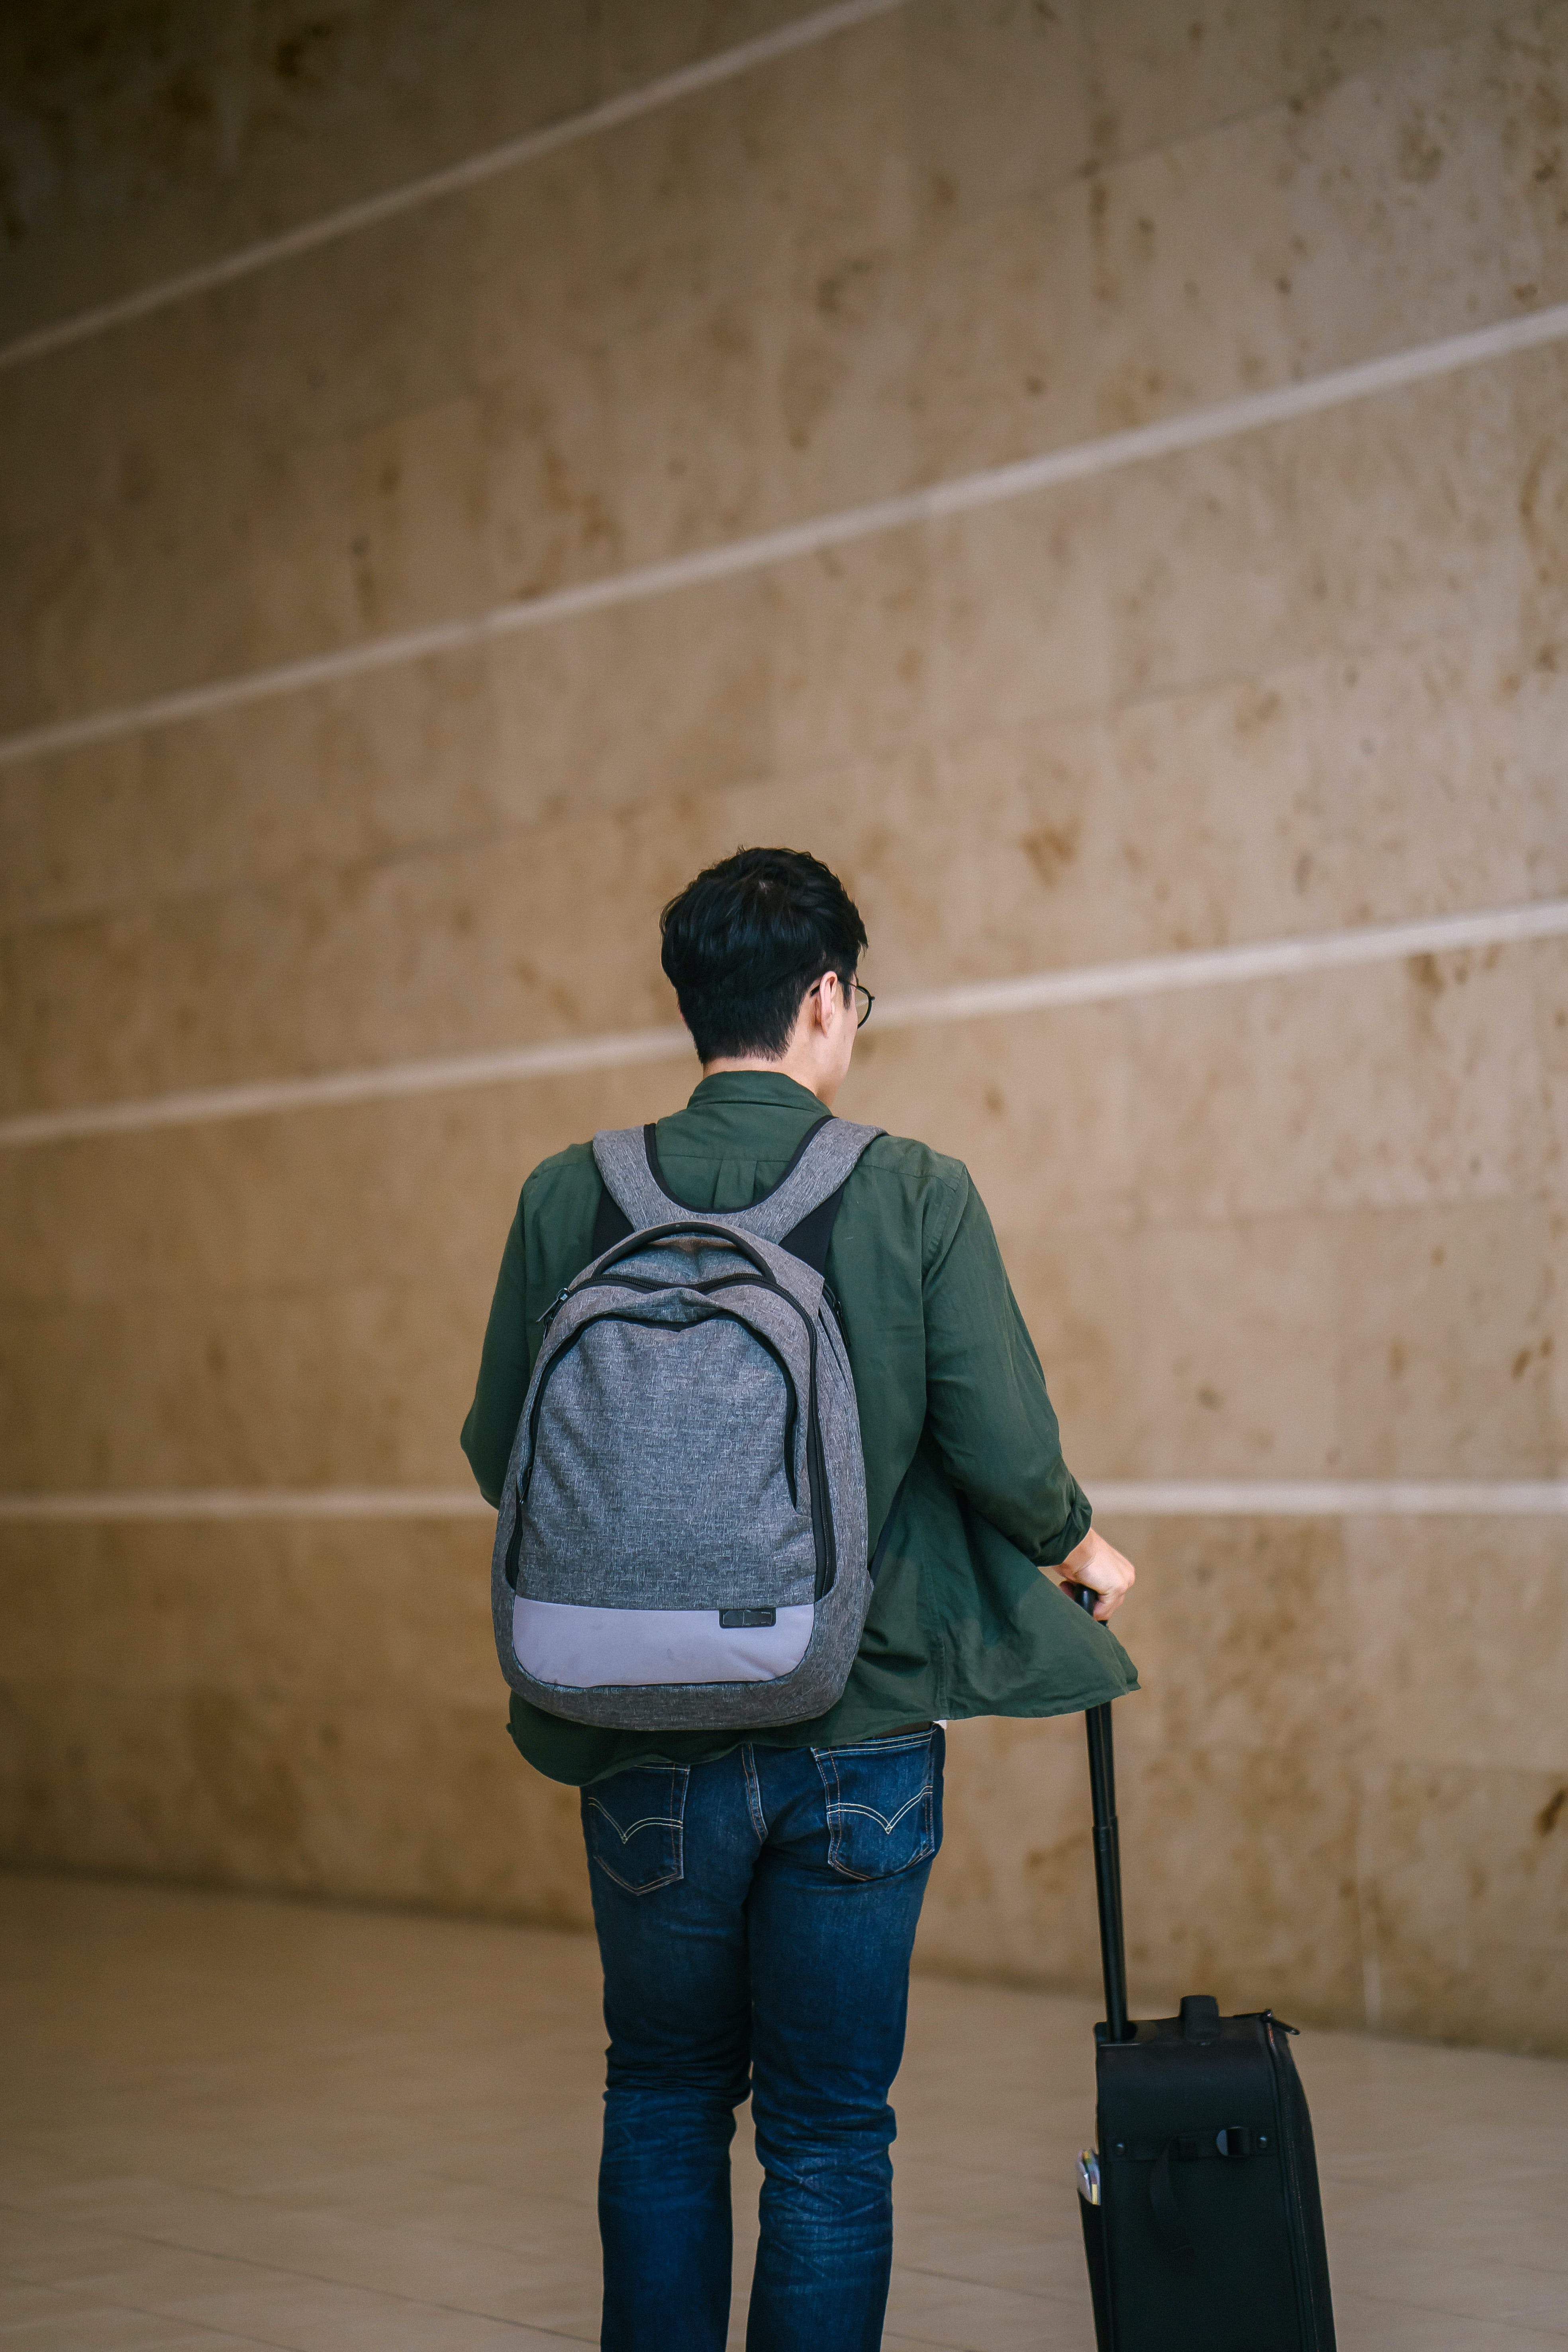 Man in Green Jacket With Backpack